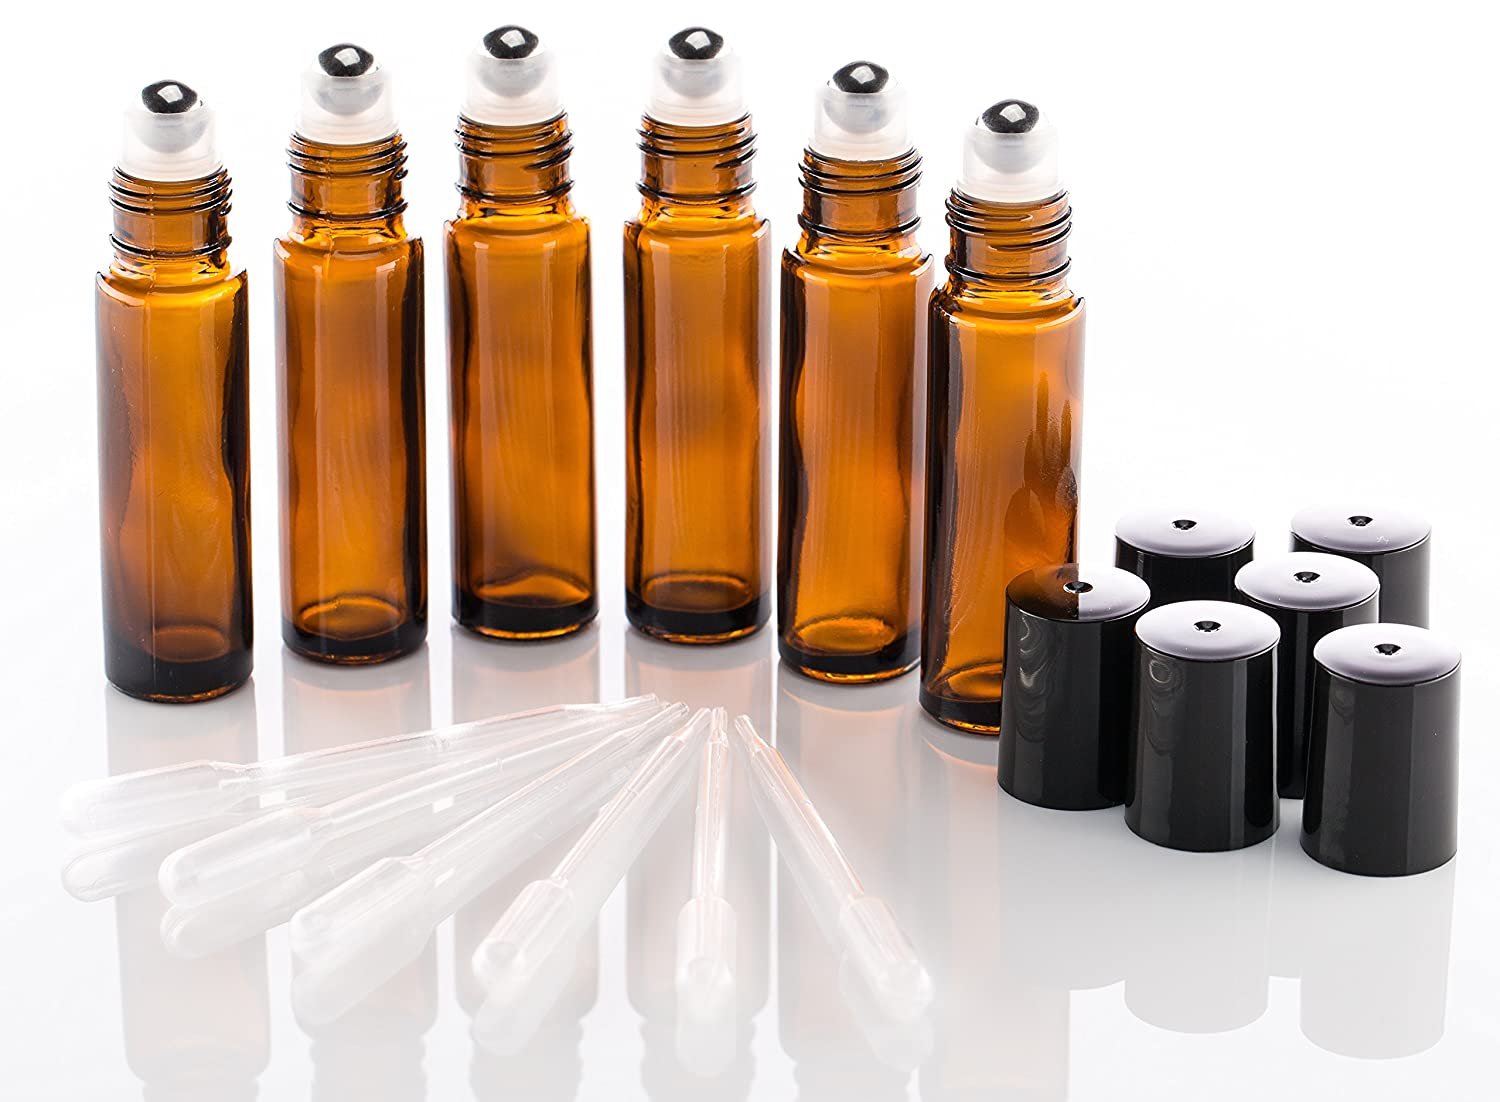 Buy Cheap Sunreek 3 Ml Amber Glass Bottle W/ Black Cap 15 Pack Strong Packing Aromatherapy